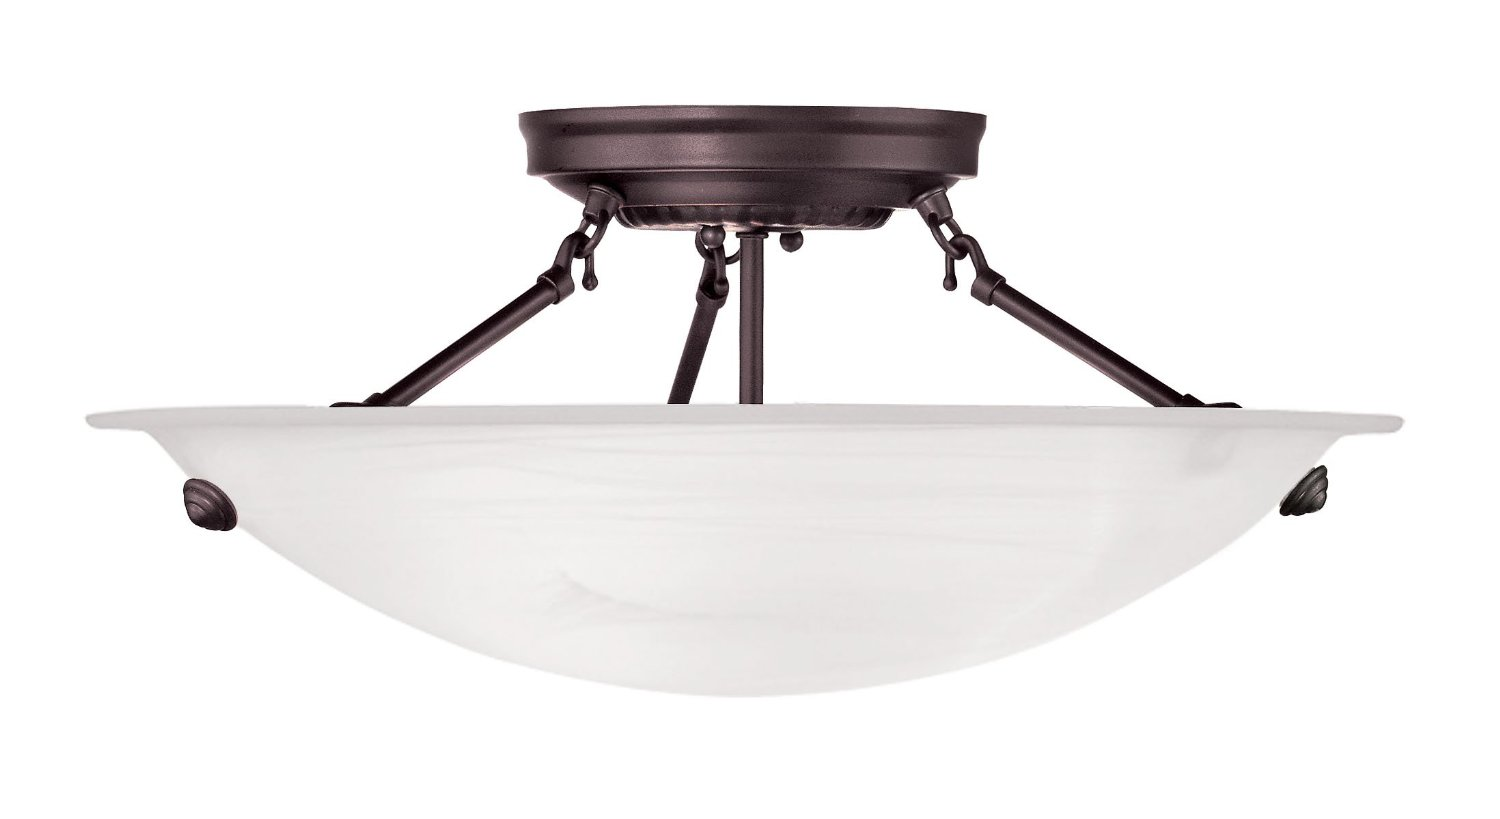 Wonderful Livex Lighting For Home Lighting Ideas: Cozy Livex Lighting 4273 91 North Port 3 Light Brushed Nickel Semi Flush For Home Lighting Ideas